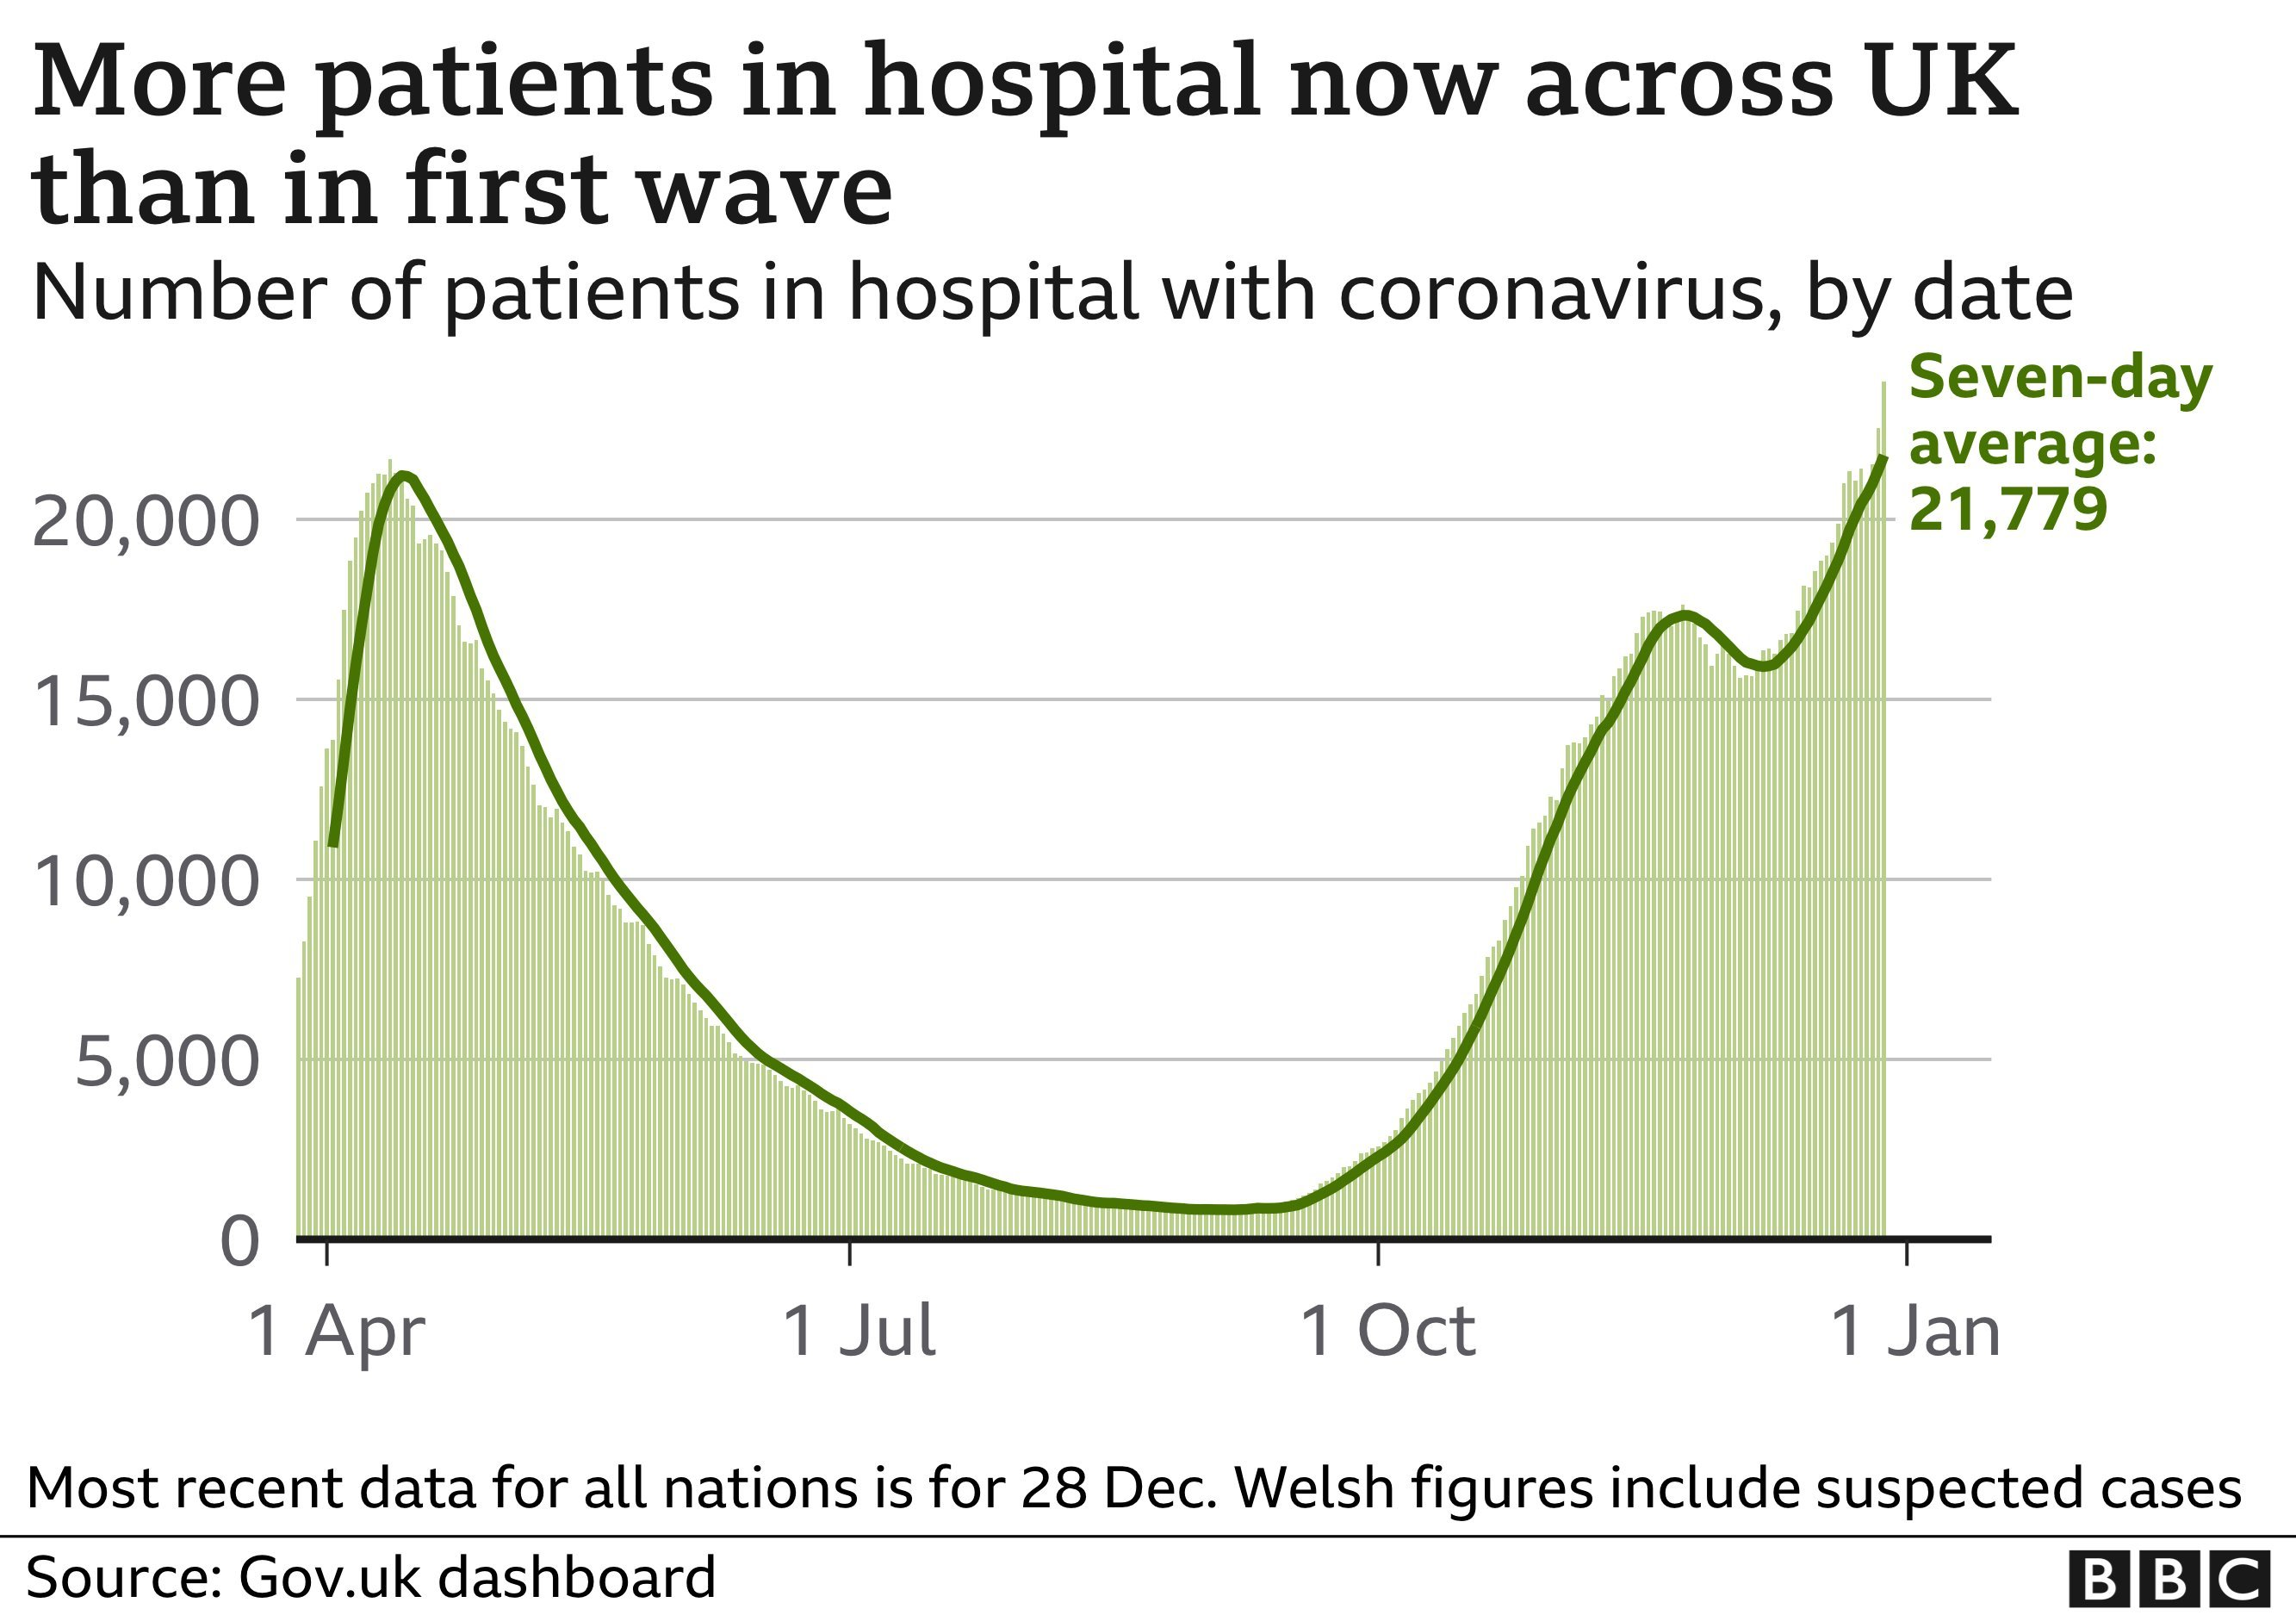 Hospitals across UK 'must prepare for Covid surge', senior doctor warns thumbnail